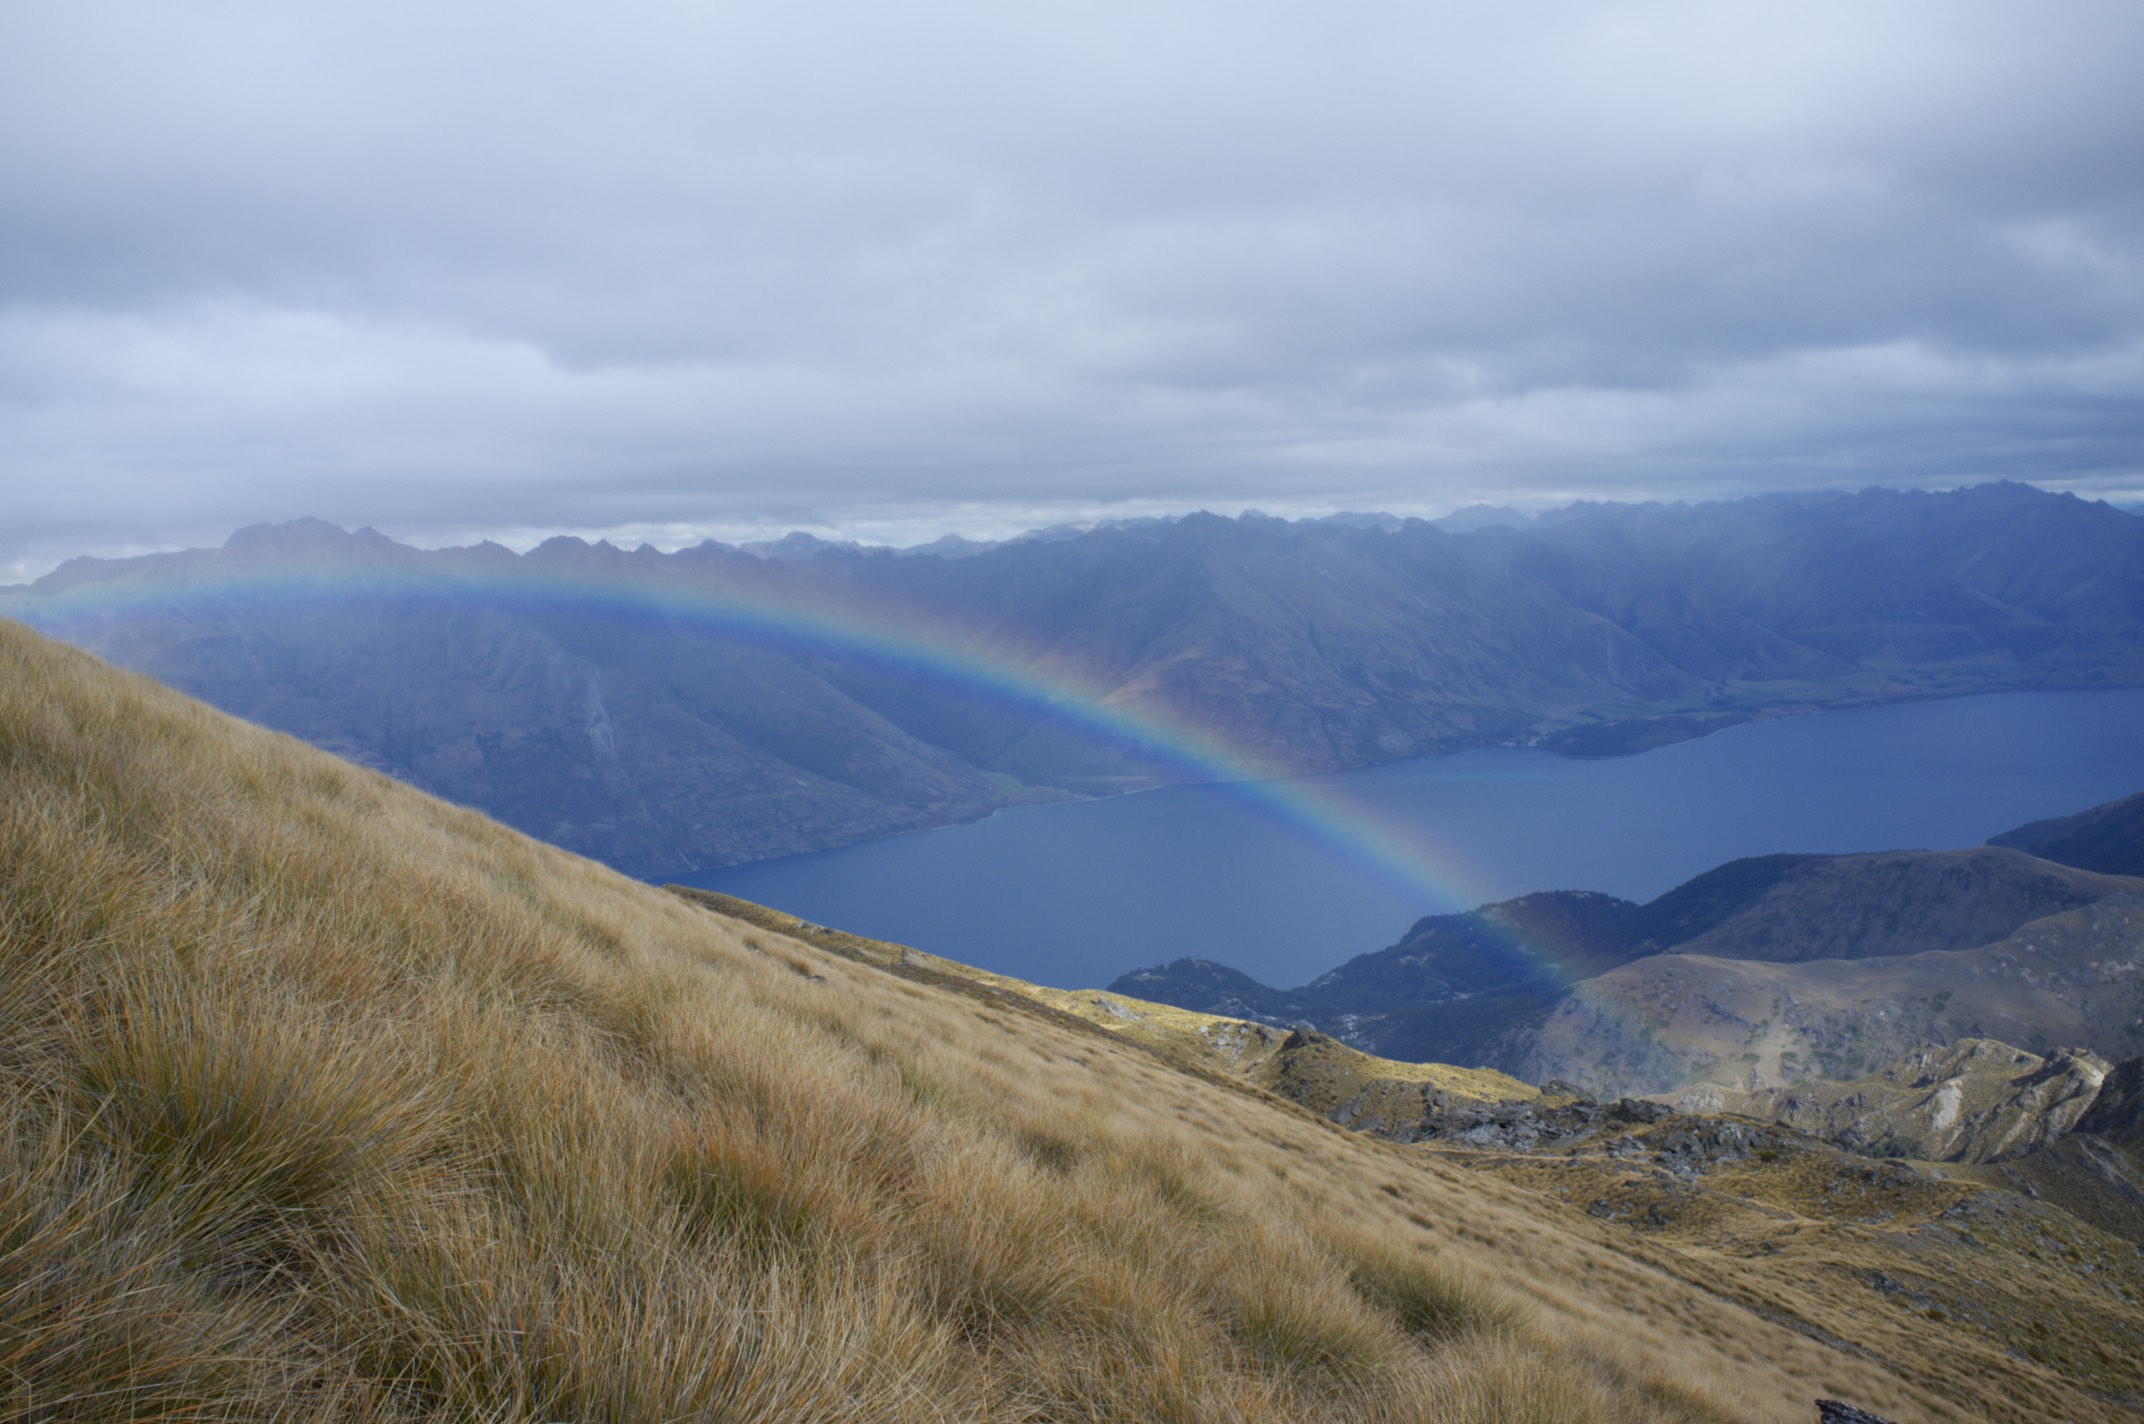 Both ends of the rainbow above lake Wakatipu.